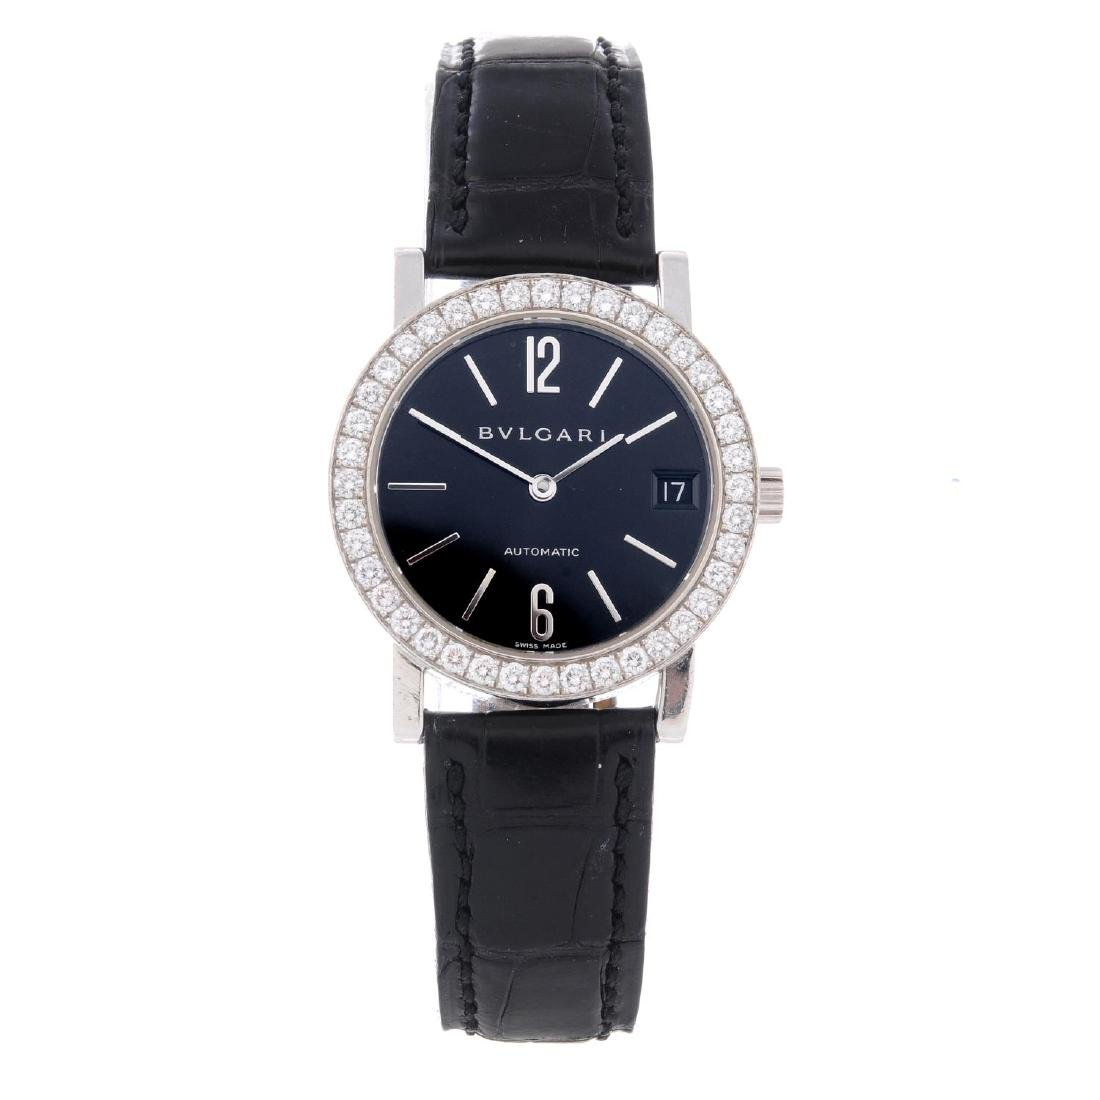 BULGARI - a mid-size wrist watch. 18ct white gold case